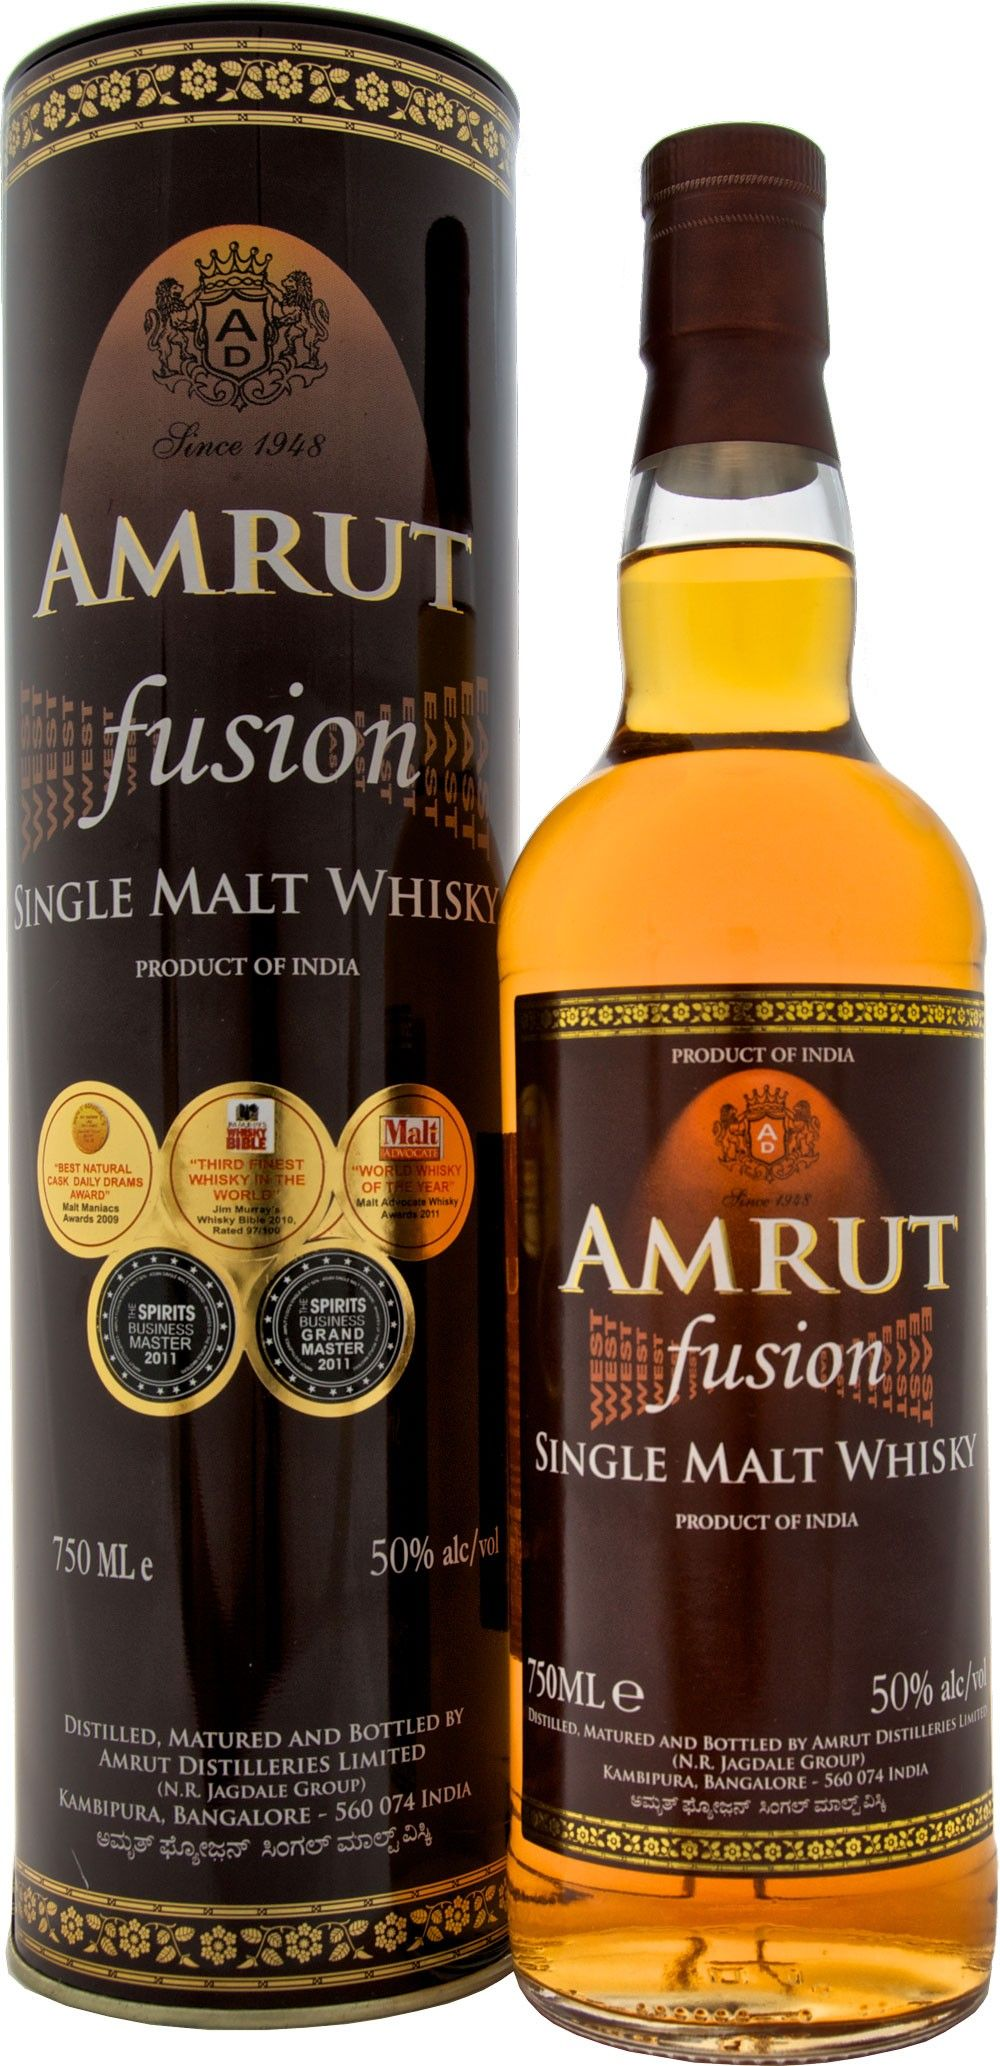 Amrut Fusion Single Malt Whisky One Of The Worlds Best From